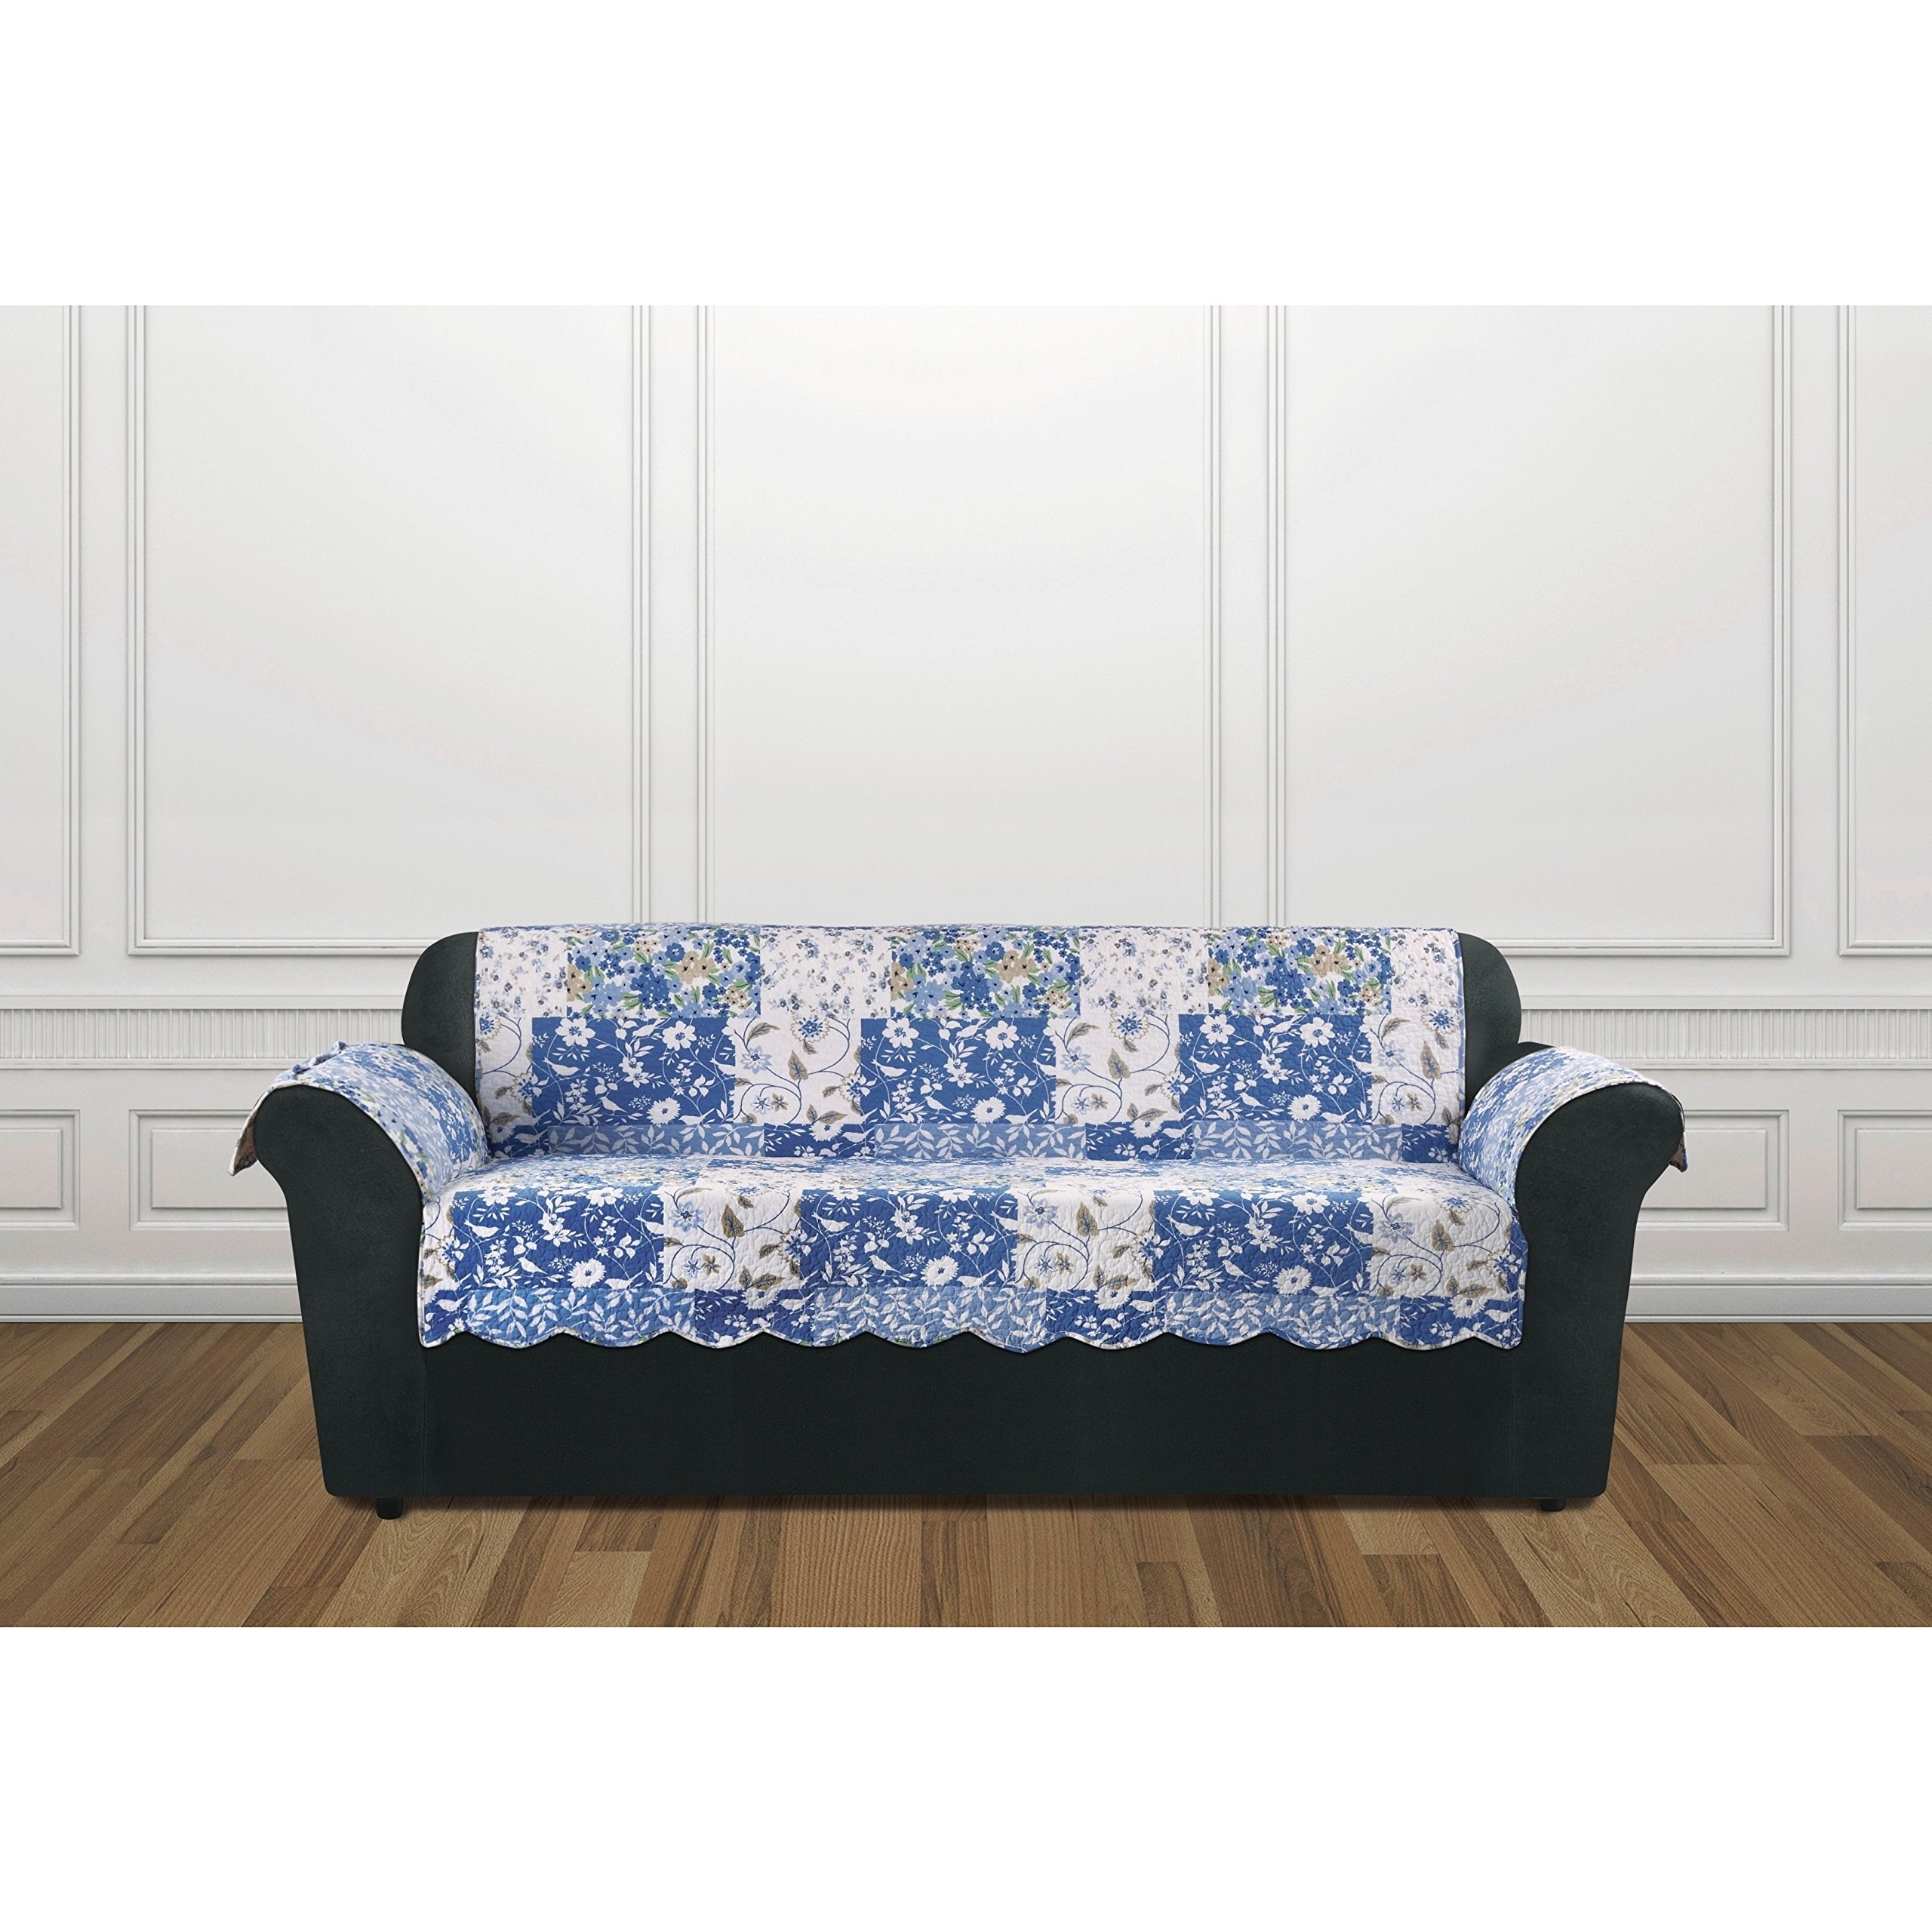 MN 1 Piece White Blue Floral Theme Sofa Protector, Geometric Checkered Square Flower Pattern Couch Protection Flowers Leaves Furniture Protection Cover Pets Animals Covers Nature Motif, Polyester